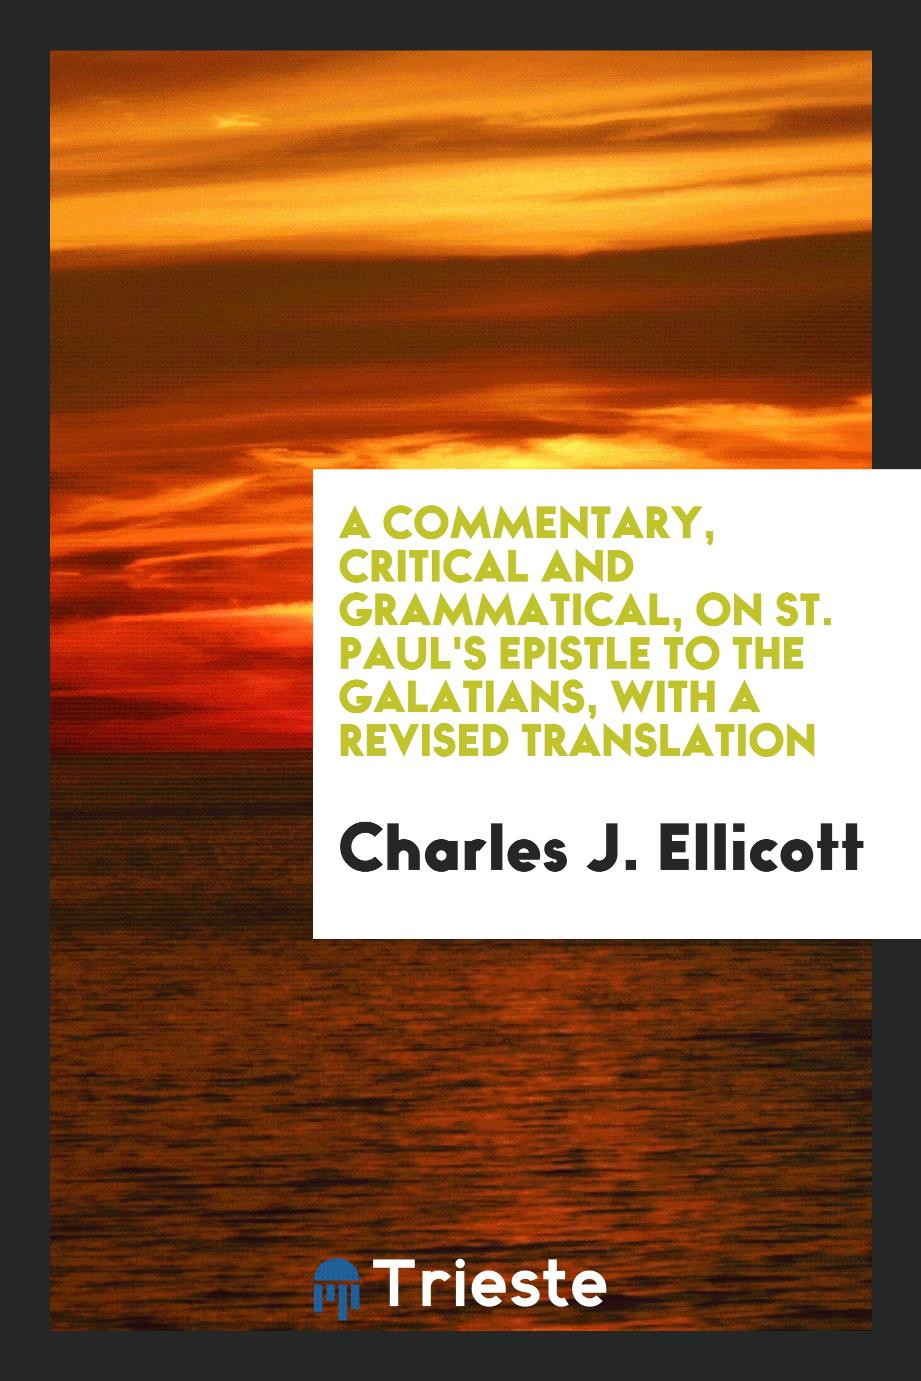 A Commentary, Critical and Grammatical, on St. Paul's Epistle to the Galatians, with a Revised Translation